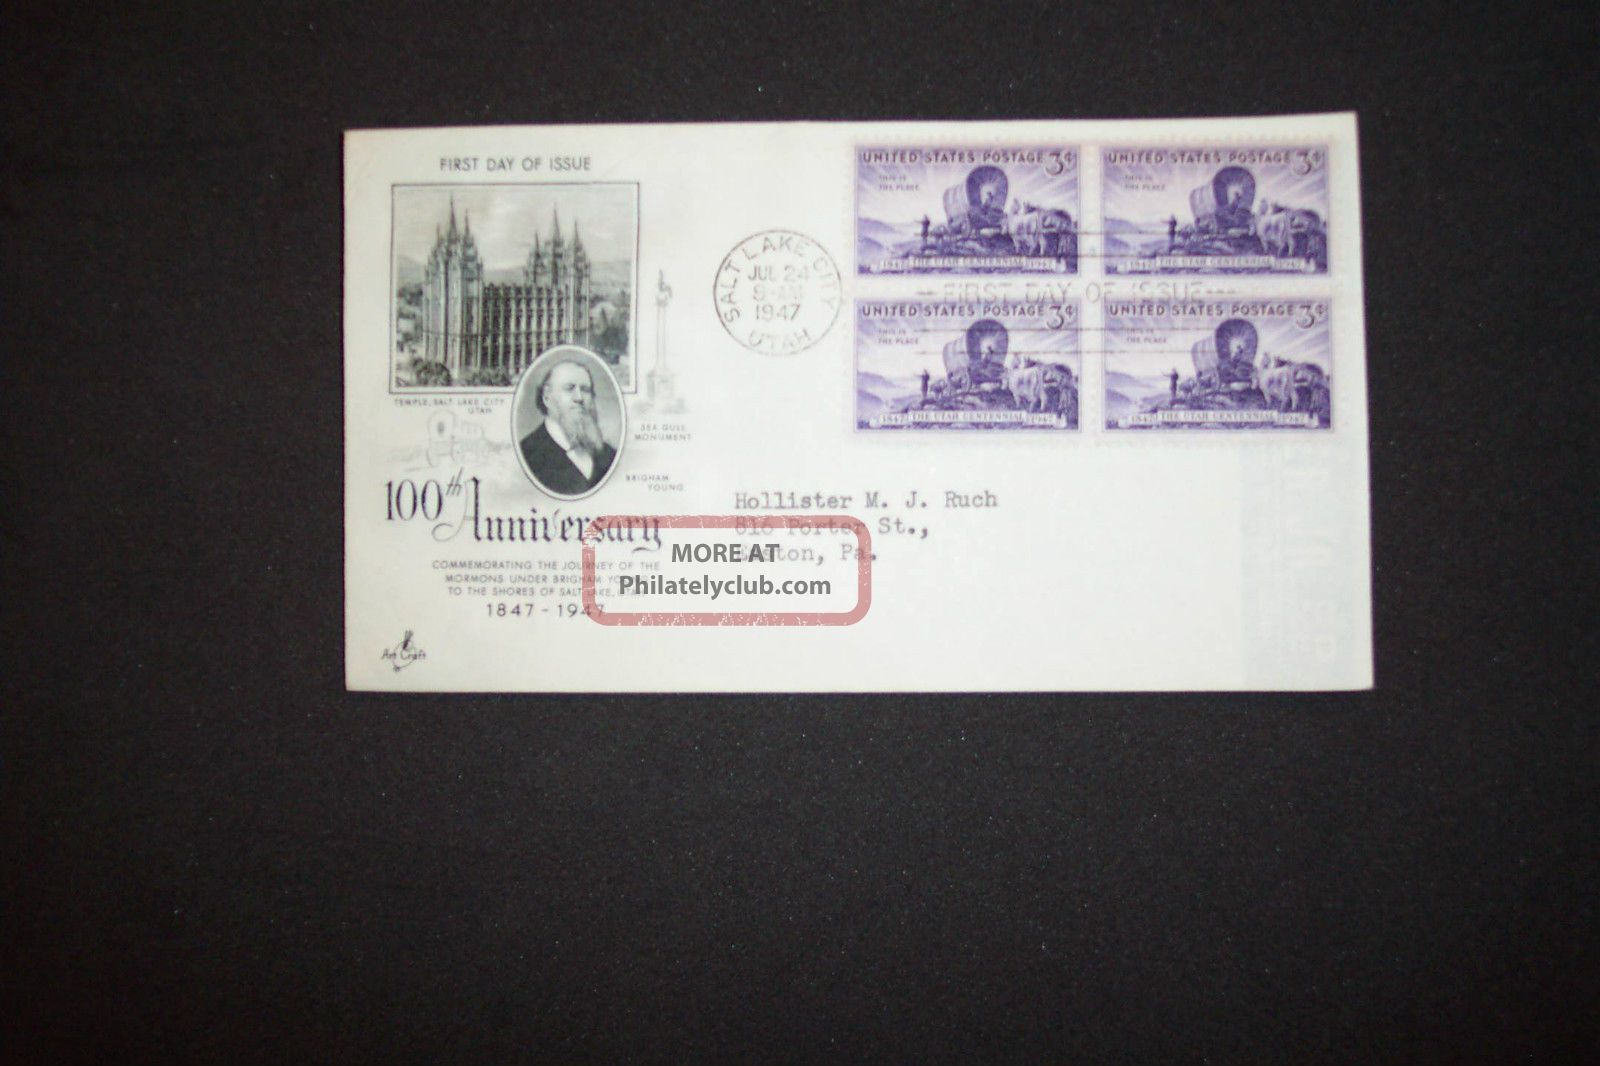 3c Blk 4 Utah Centennial Art Craft/scott 950 FDCs (pre-1951) photo